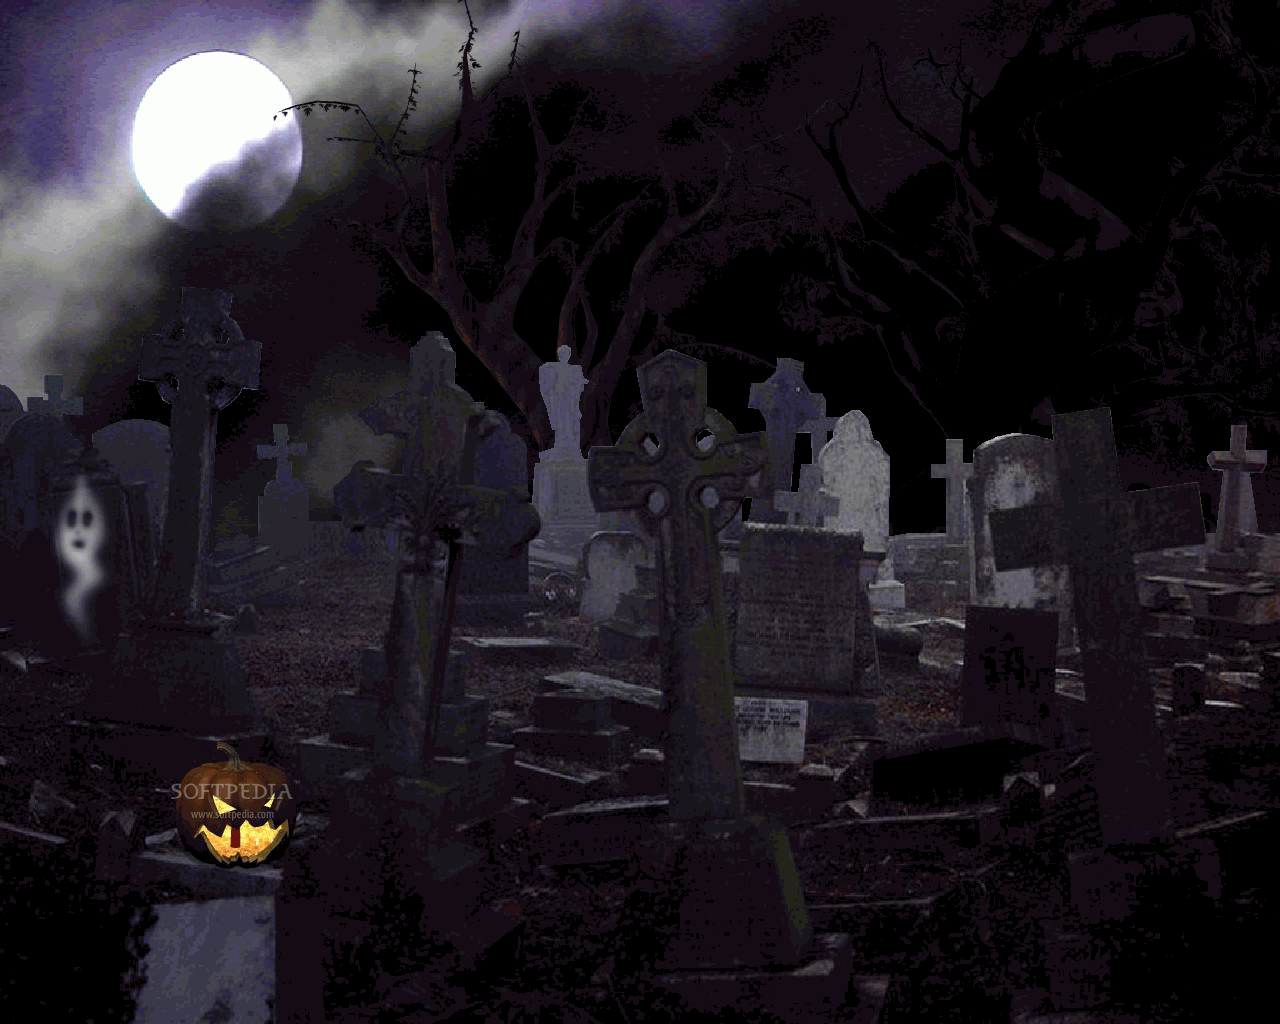 wallpaper freehalloween imageswallpaperdisney halloween wallpaper 1280x1024